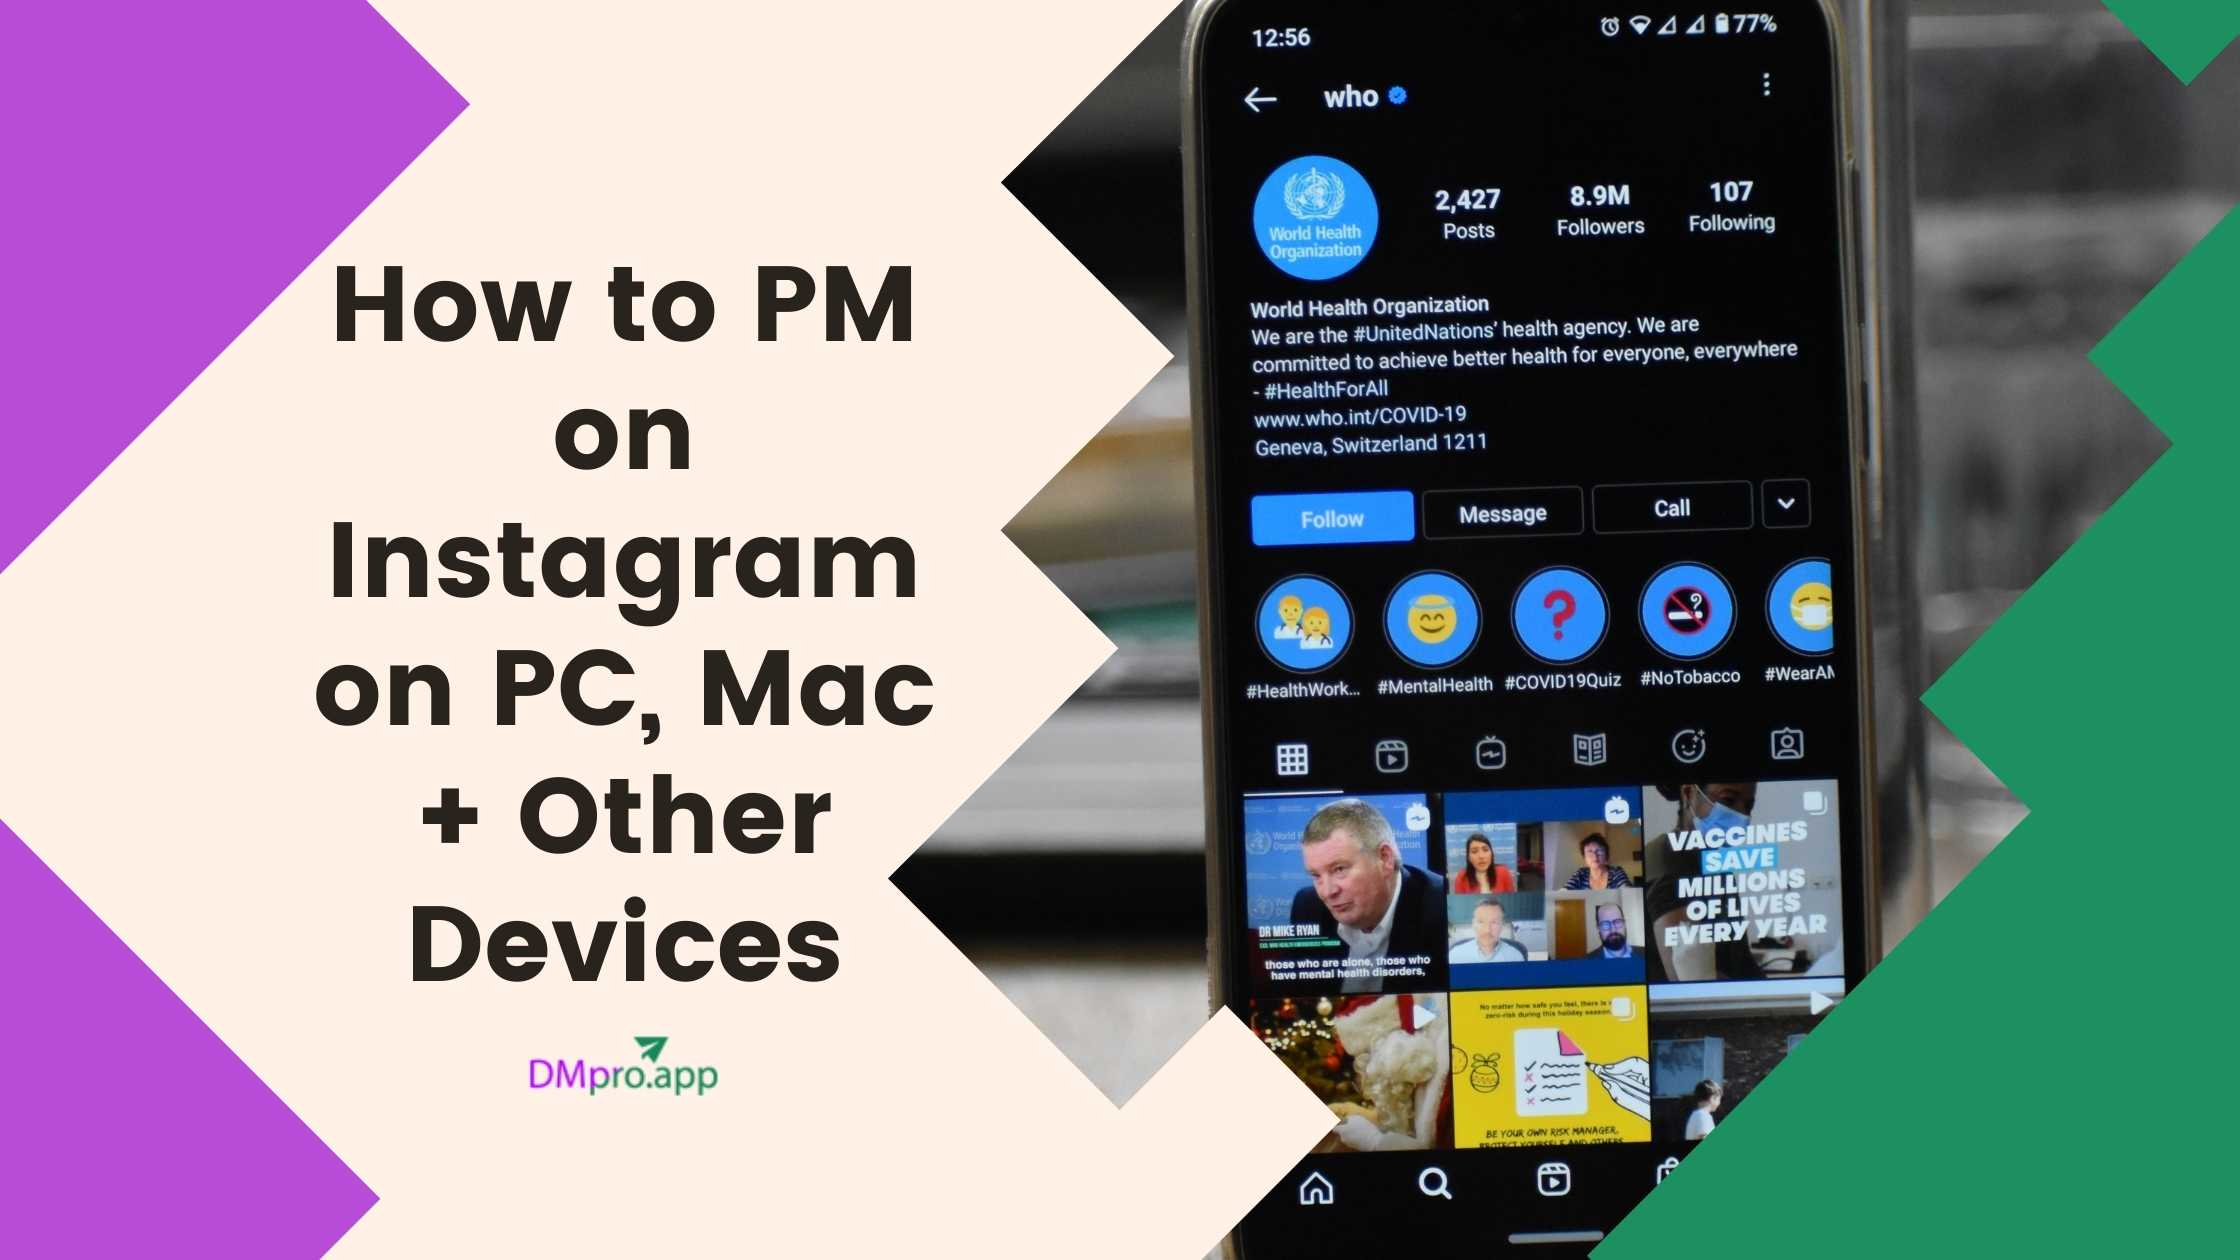 how to pm on instagram